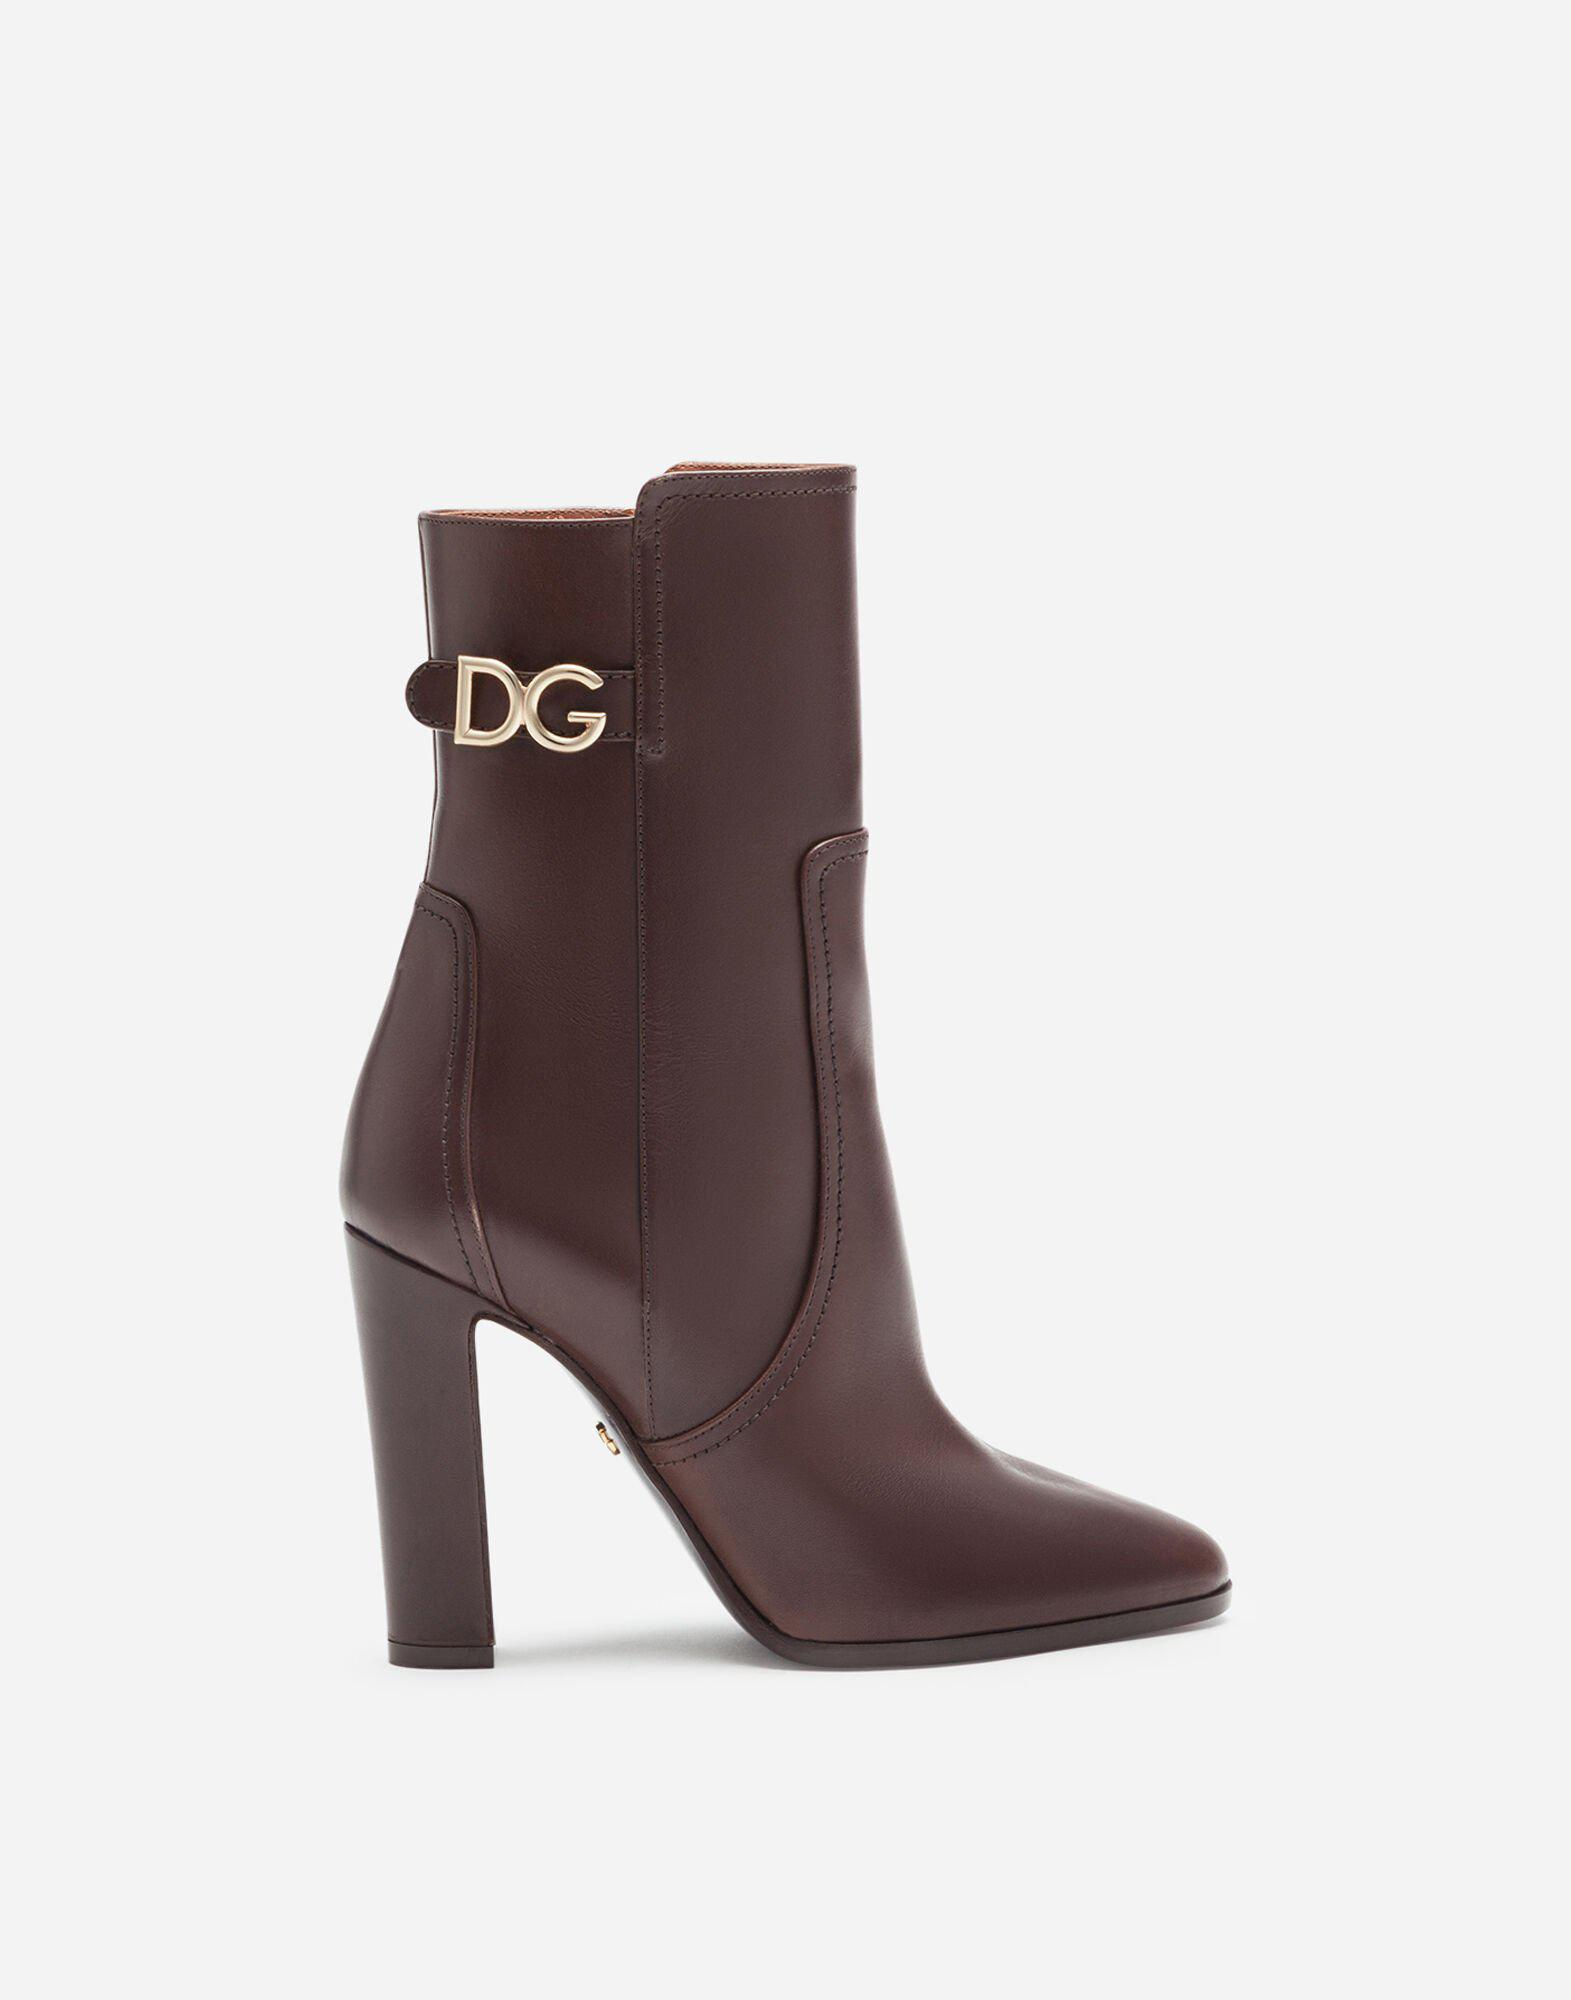 Ankle boots in cowhide with DG logo 0